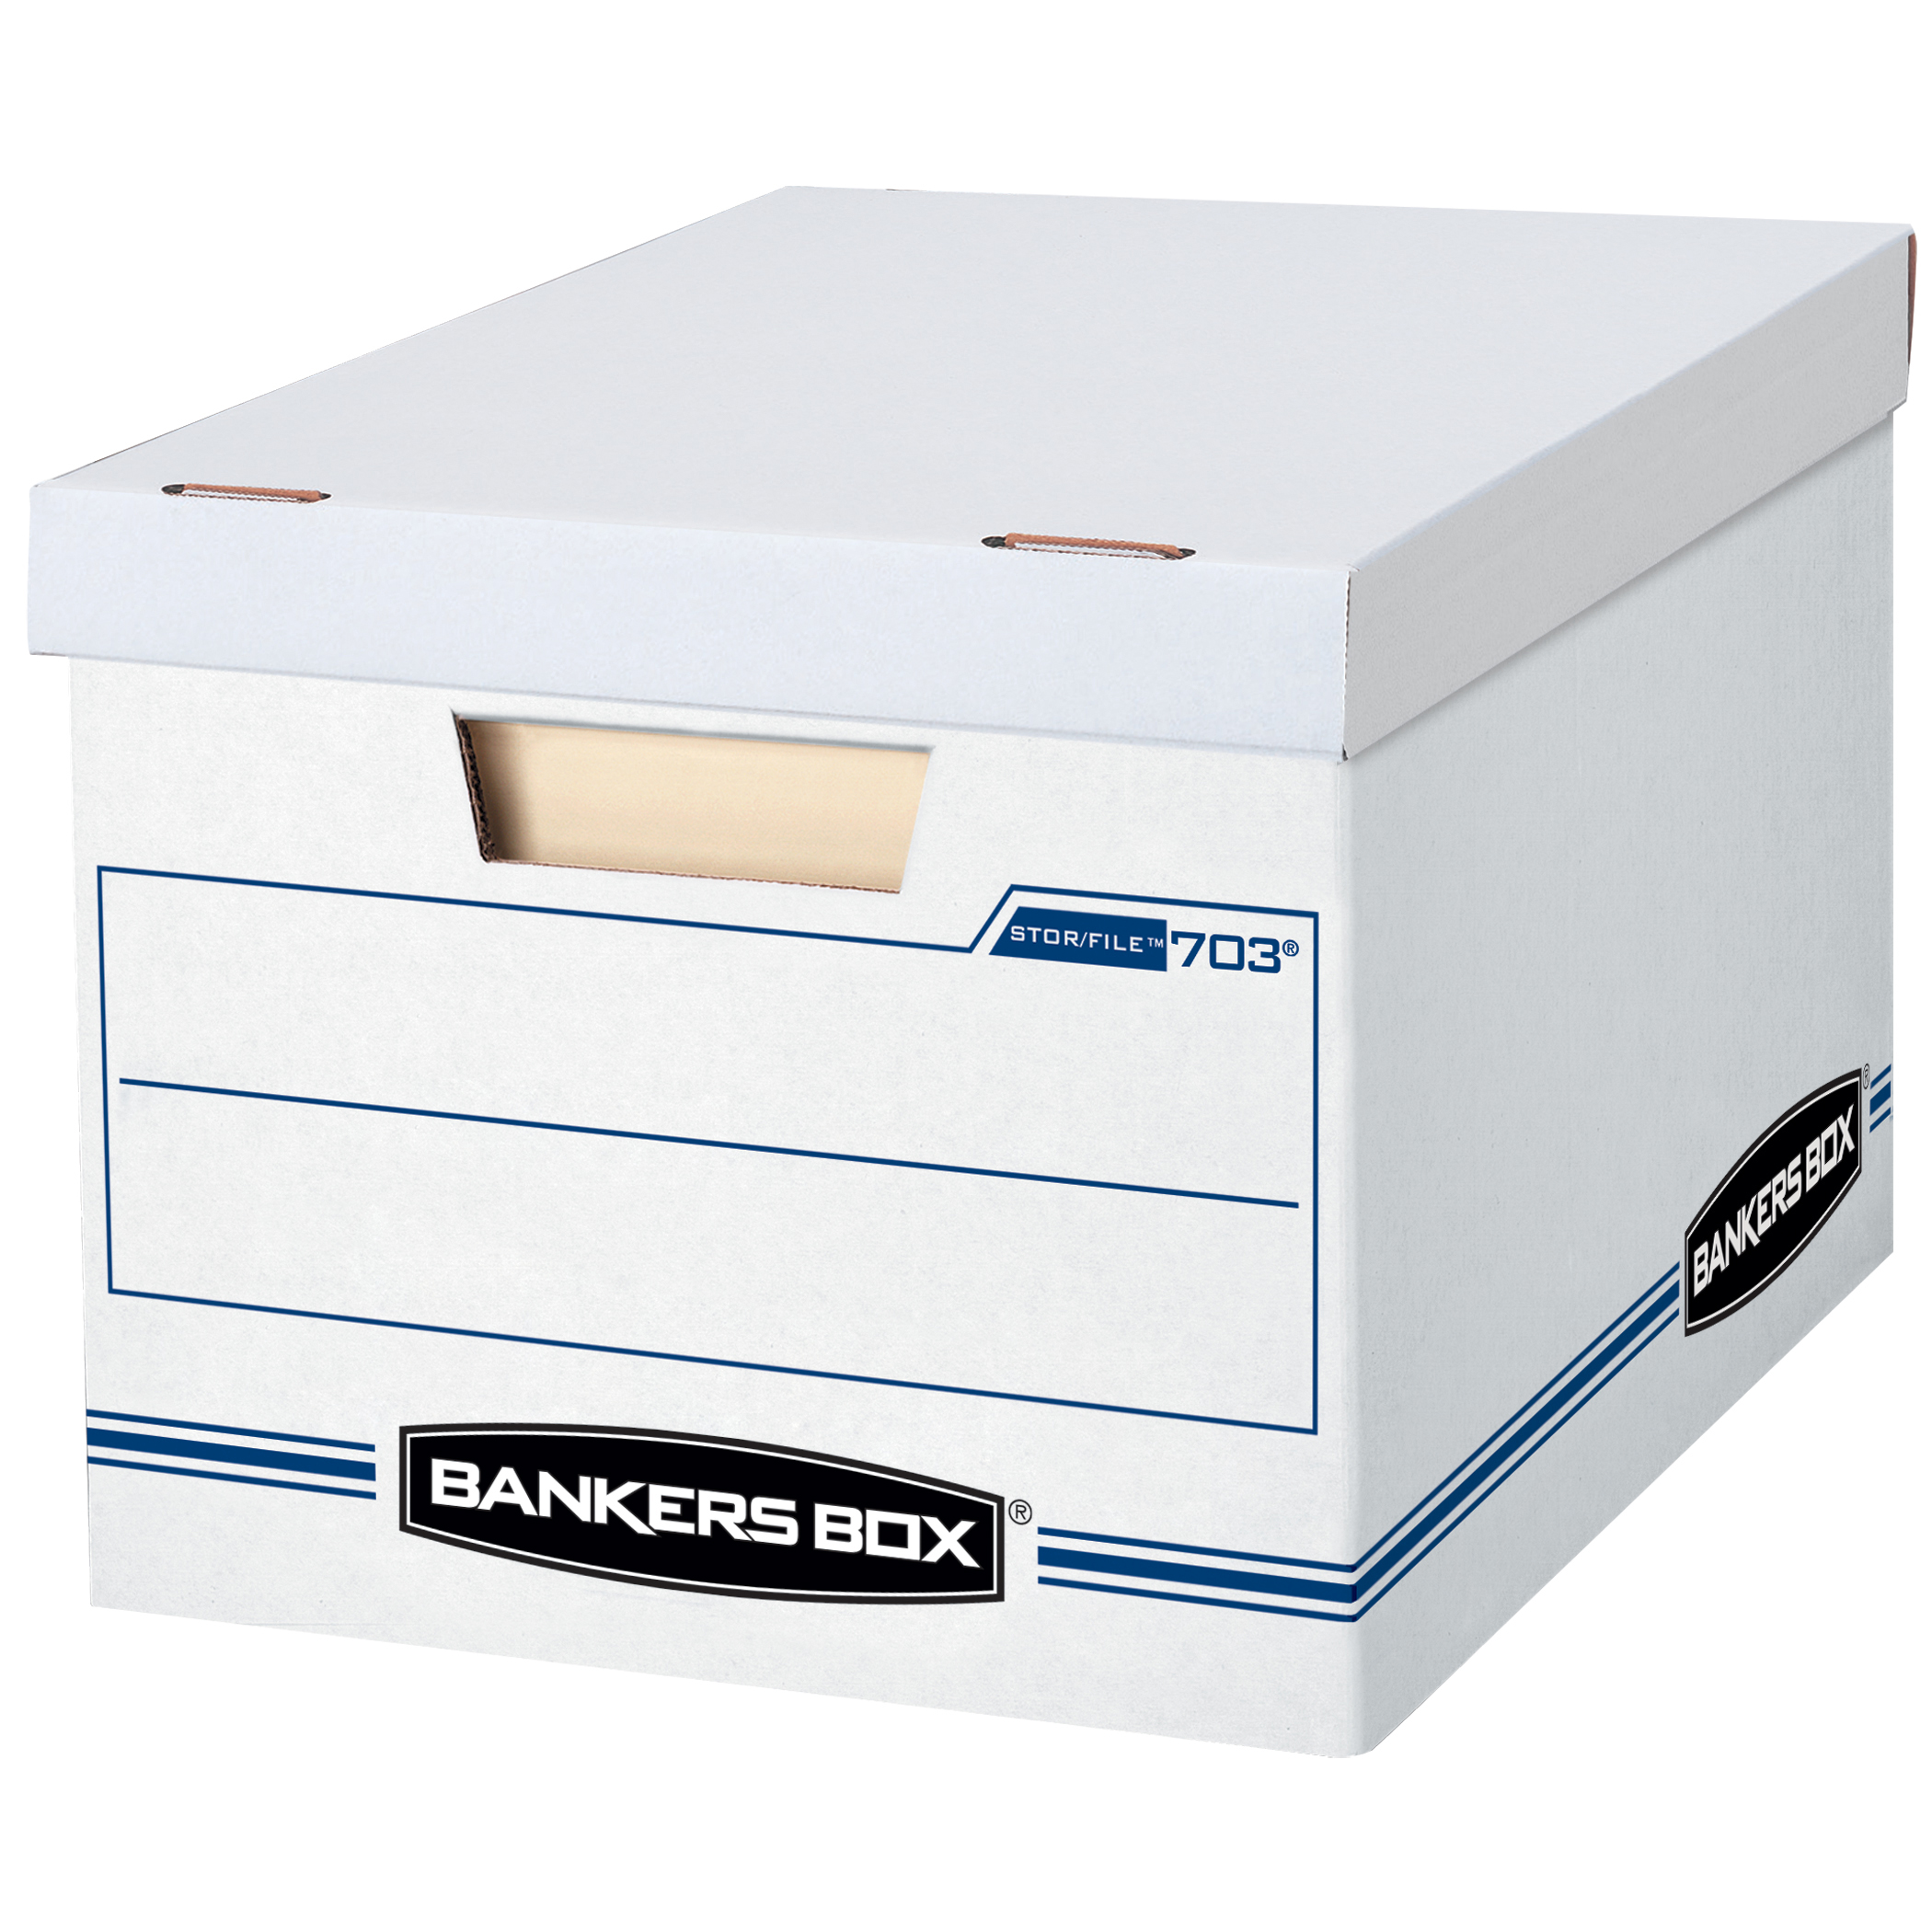 """Bankers Box® Stor/File™ Basic Strength Storage Boxes, 15"""" x 12"""" x 10"""", Letter/Legal, 60% Recycled, White/Blue, Pack Of 12"""